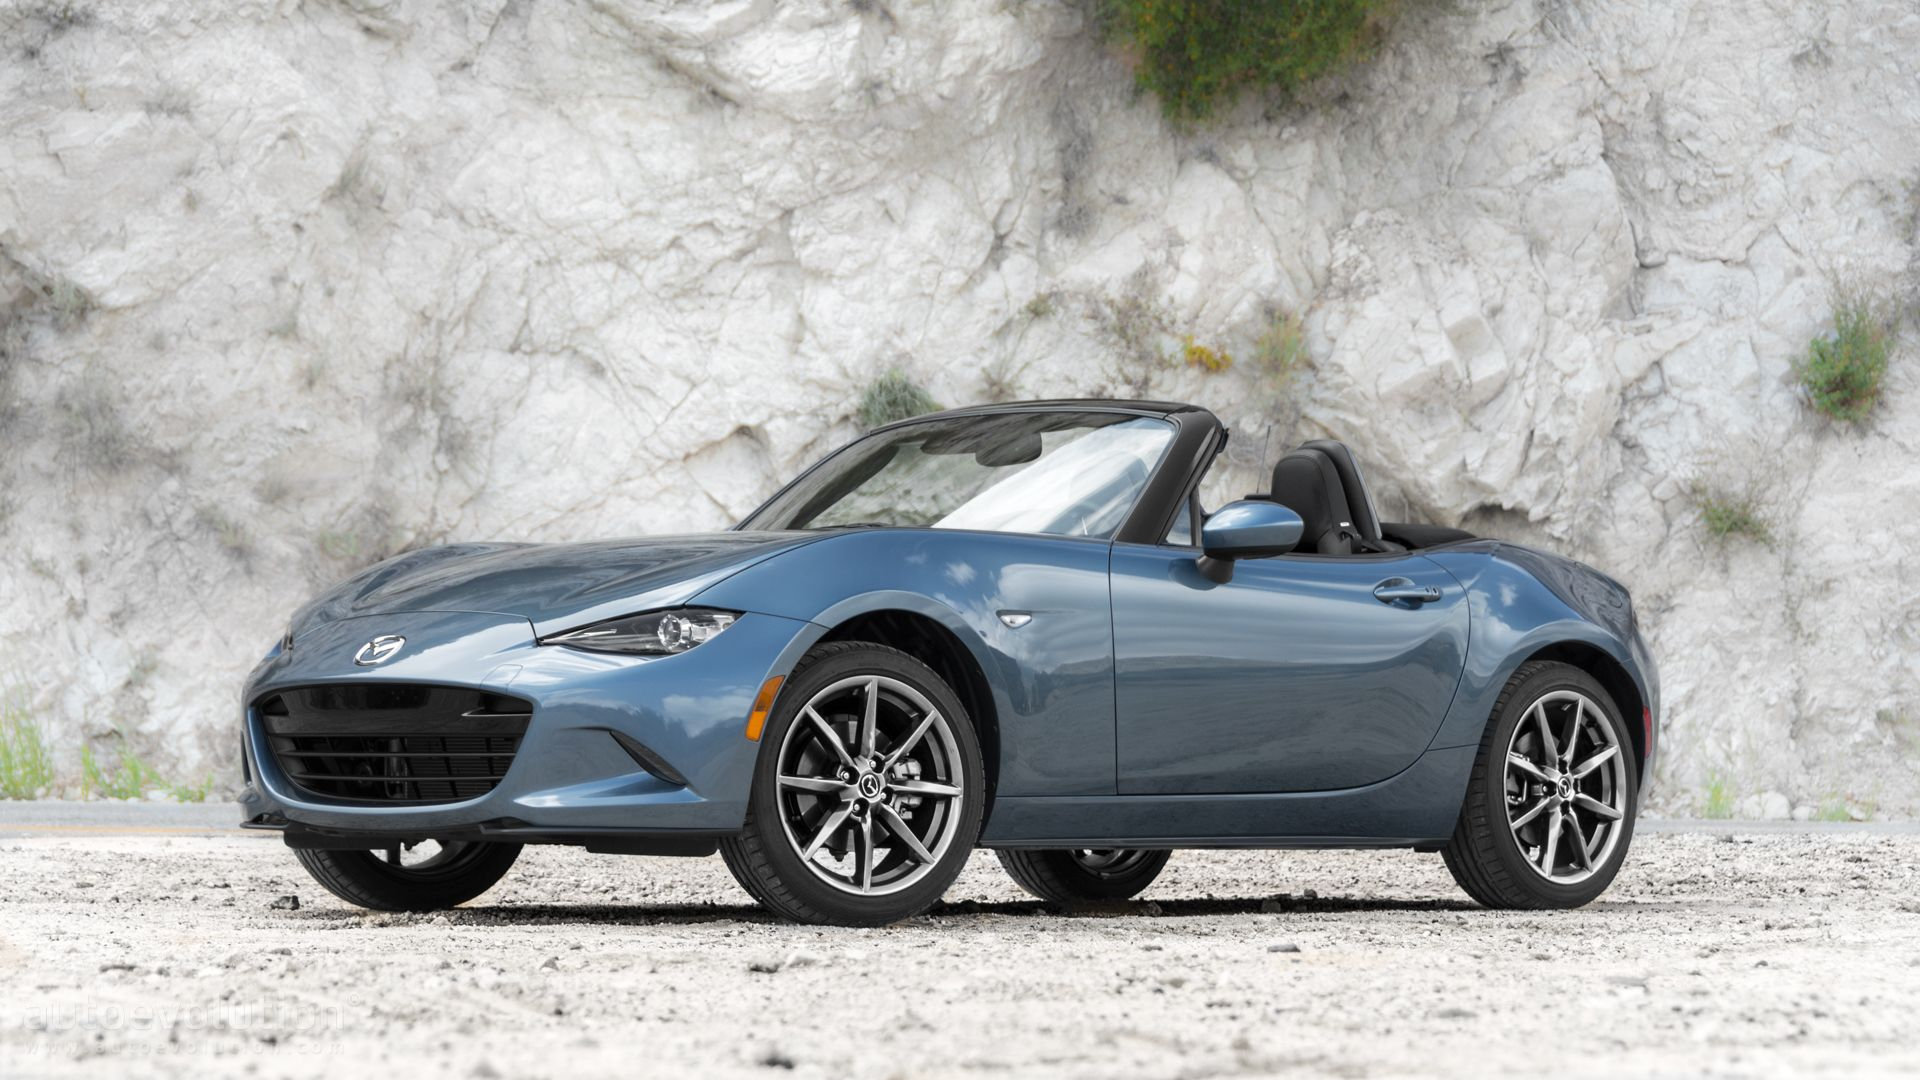 Free Download 2016 Mazda Mx 5 Miata Hd Wallpapers Keyword